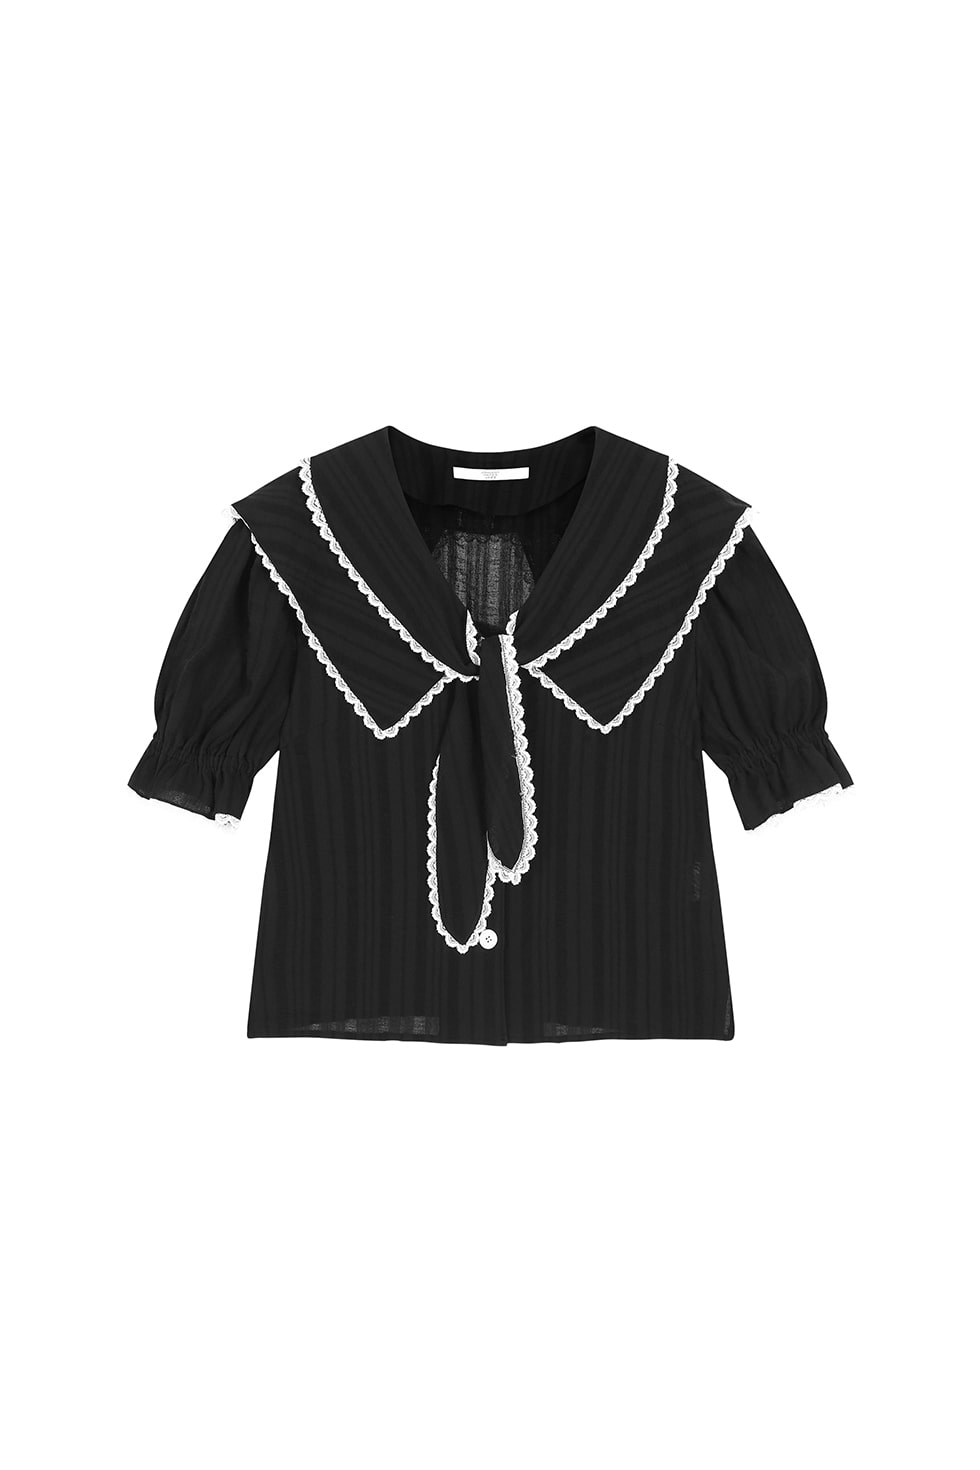 RIBBON TIE COTTON BLOUSE - BLACK